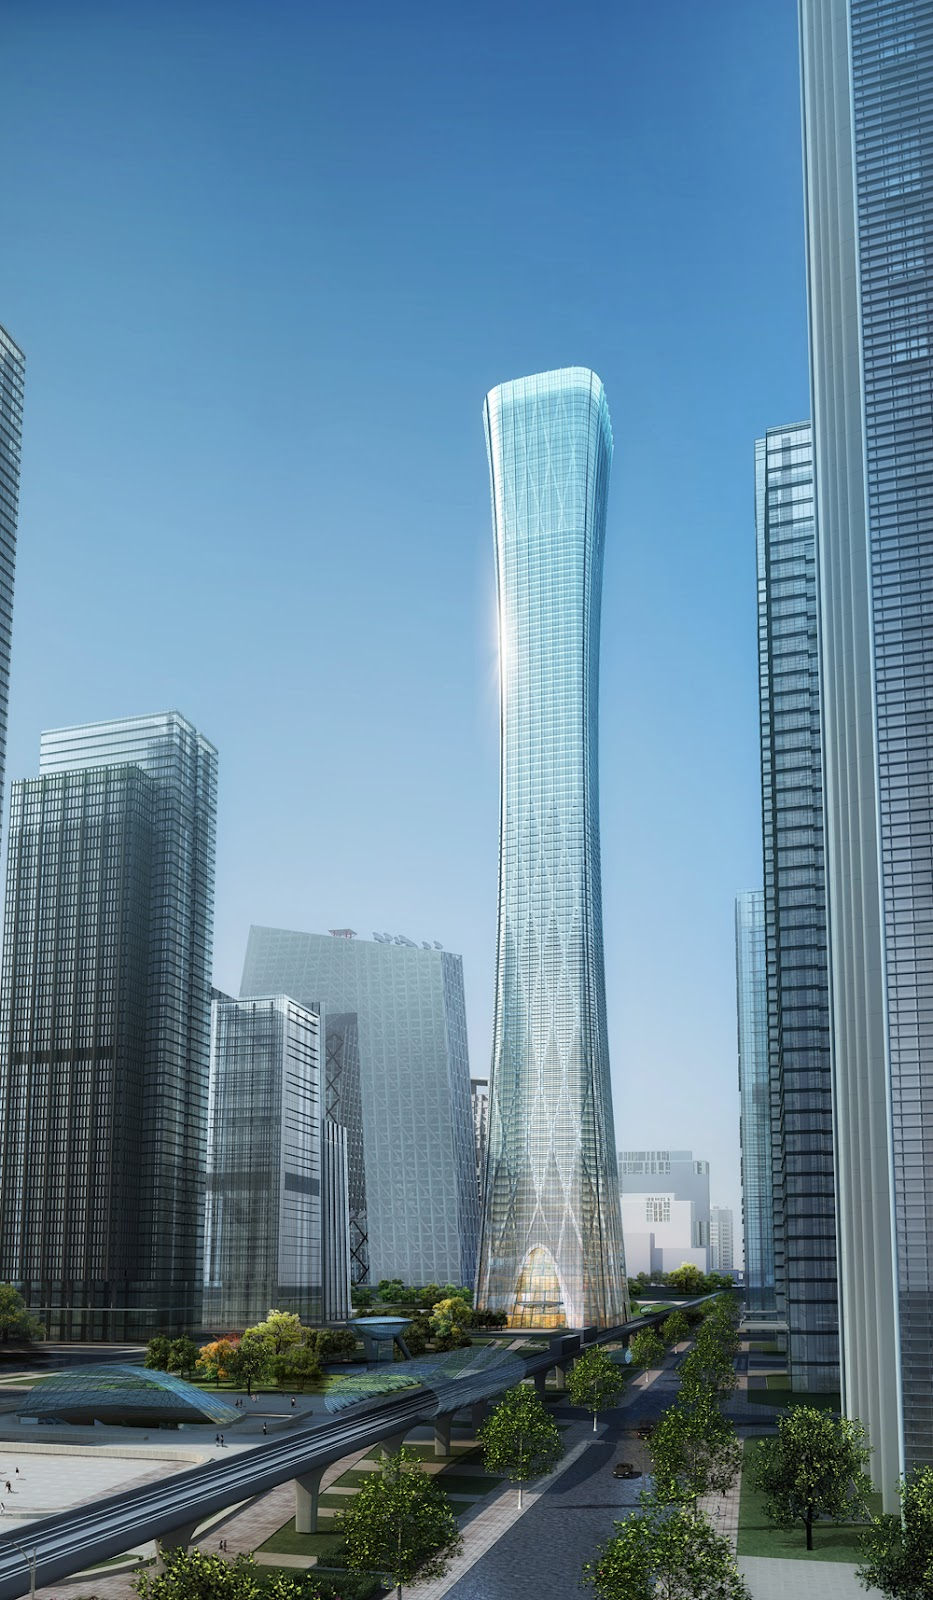 The Beijing Zhonguo Zun Z15 Tower Project In Citic Plaza on French School Project